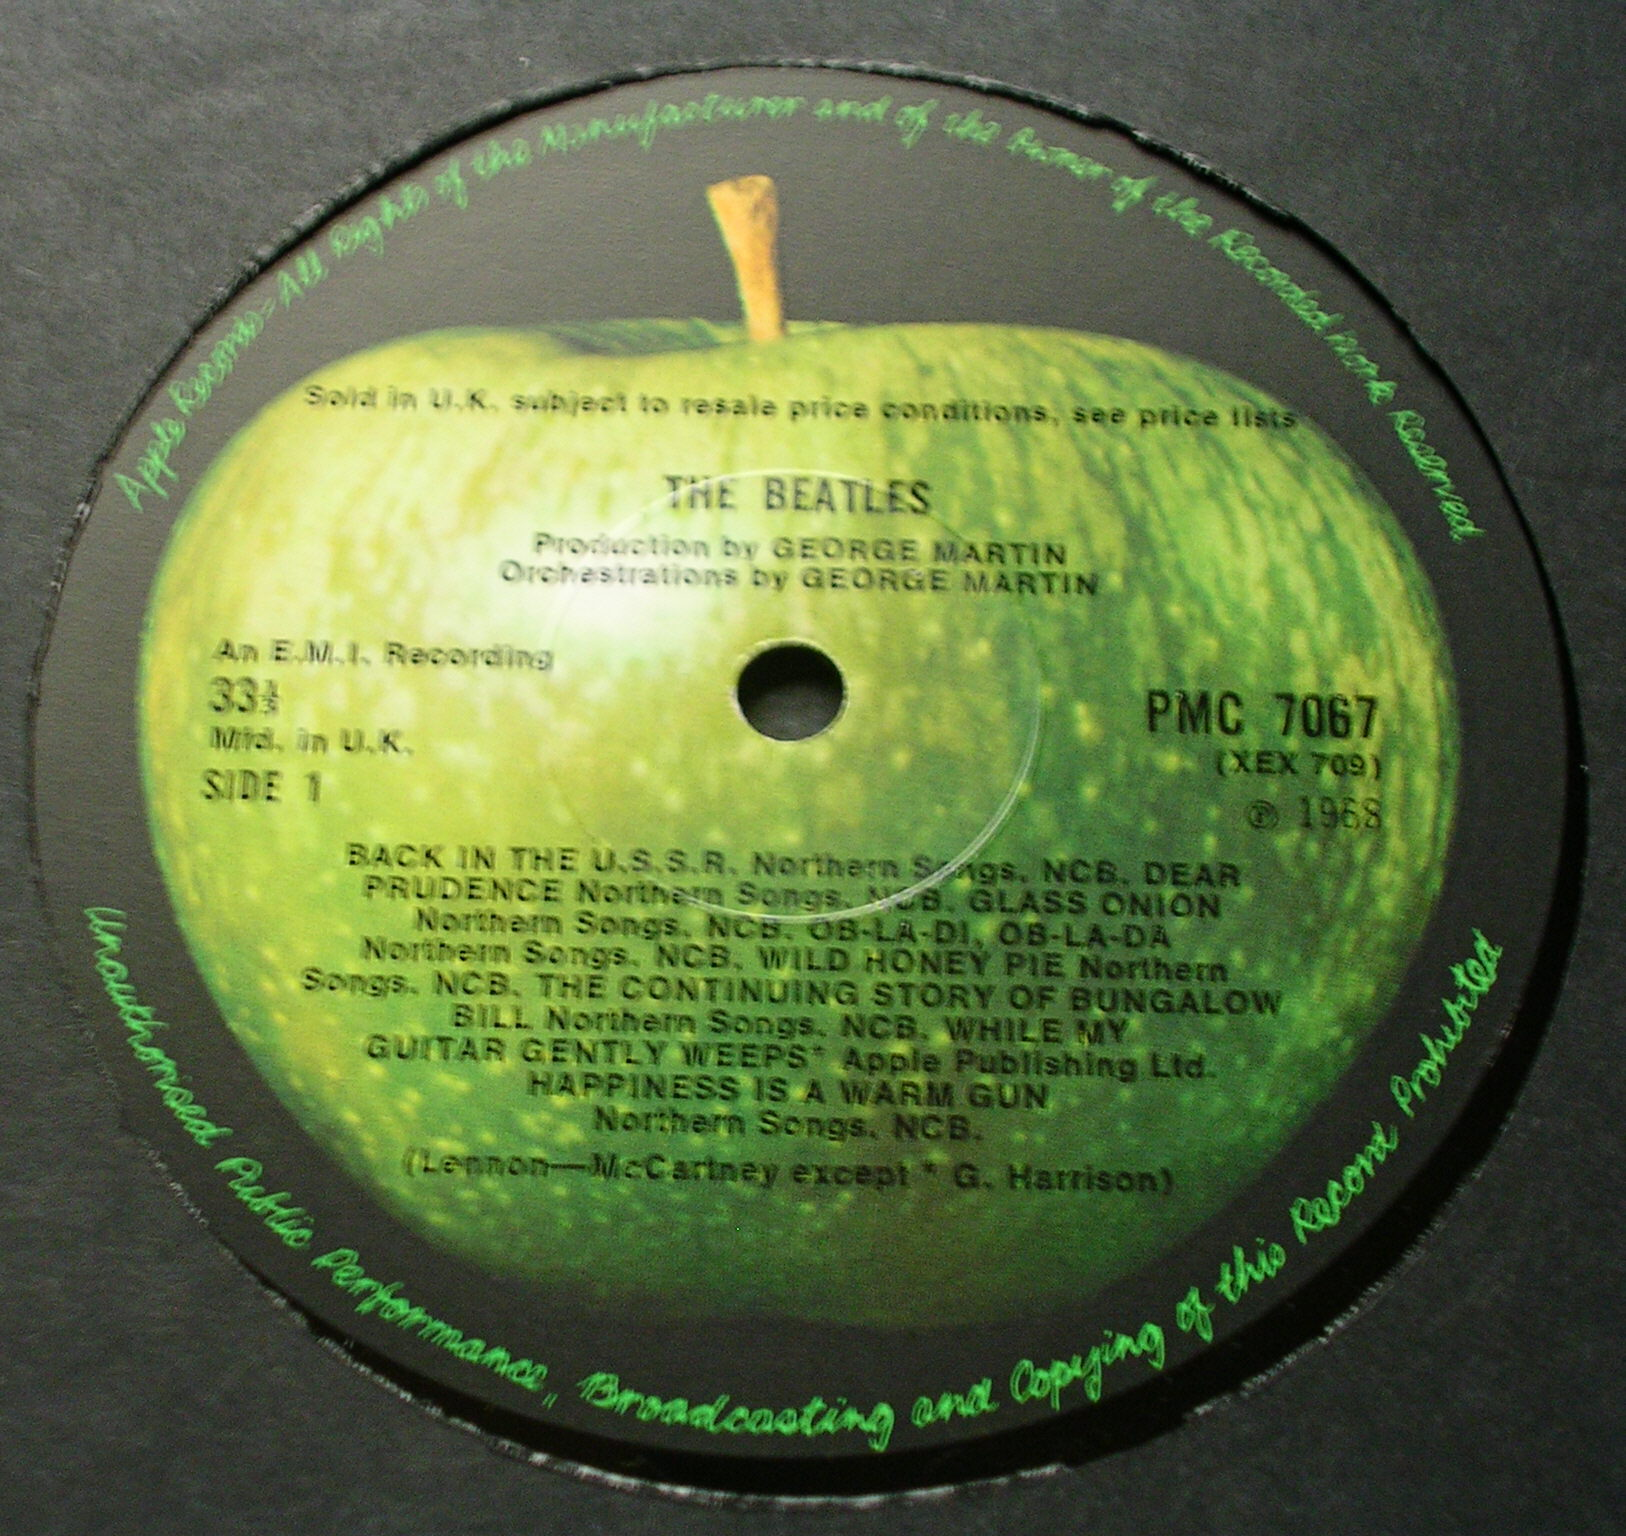 Image result for beatles vinyl album images